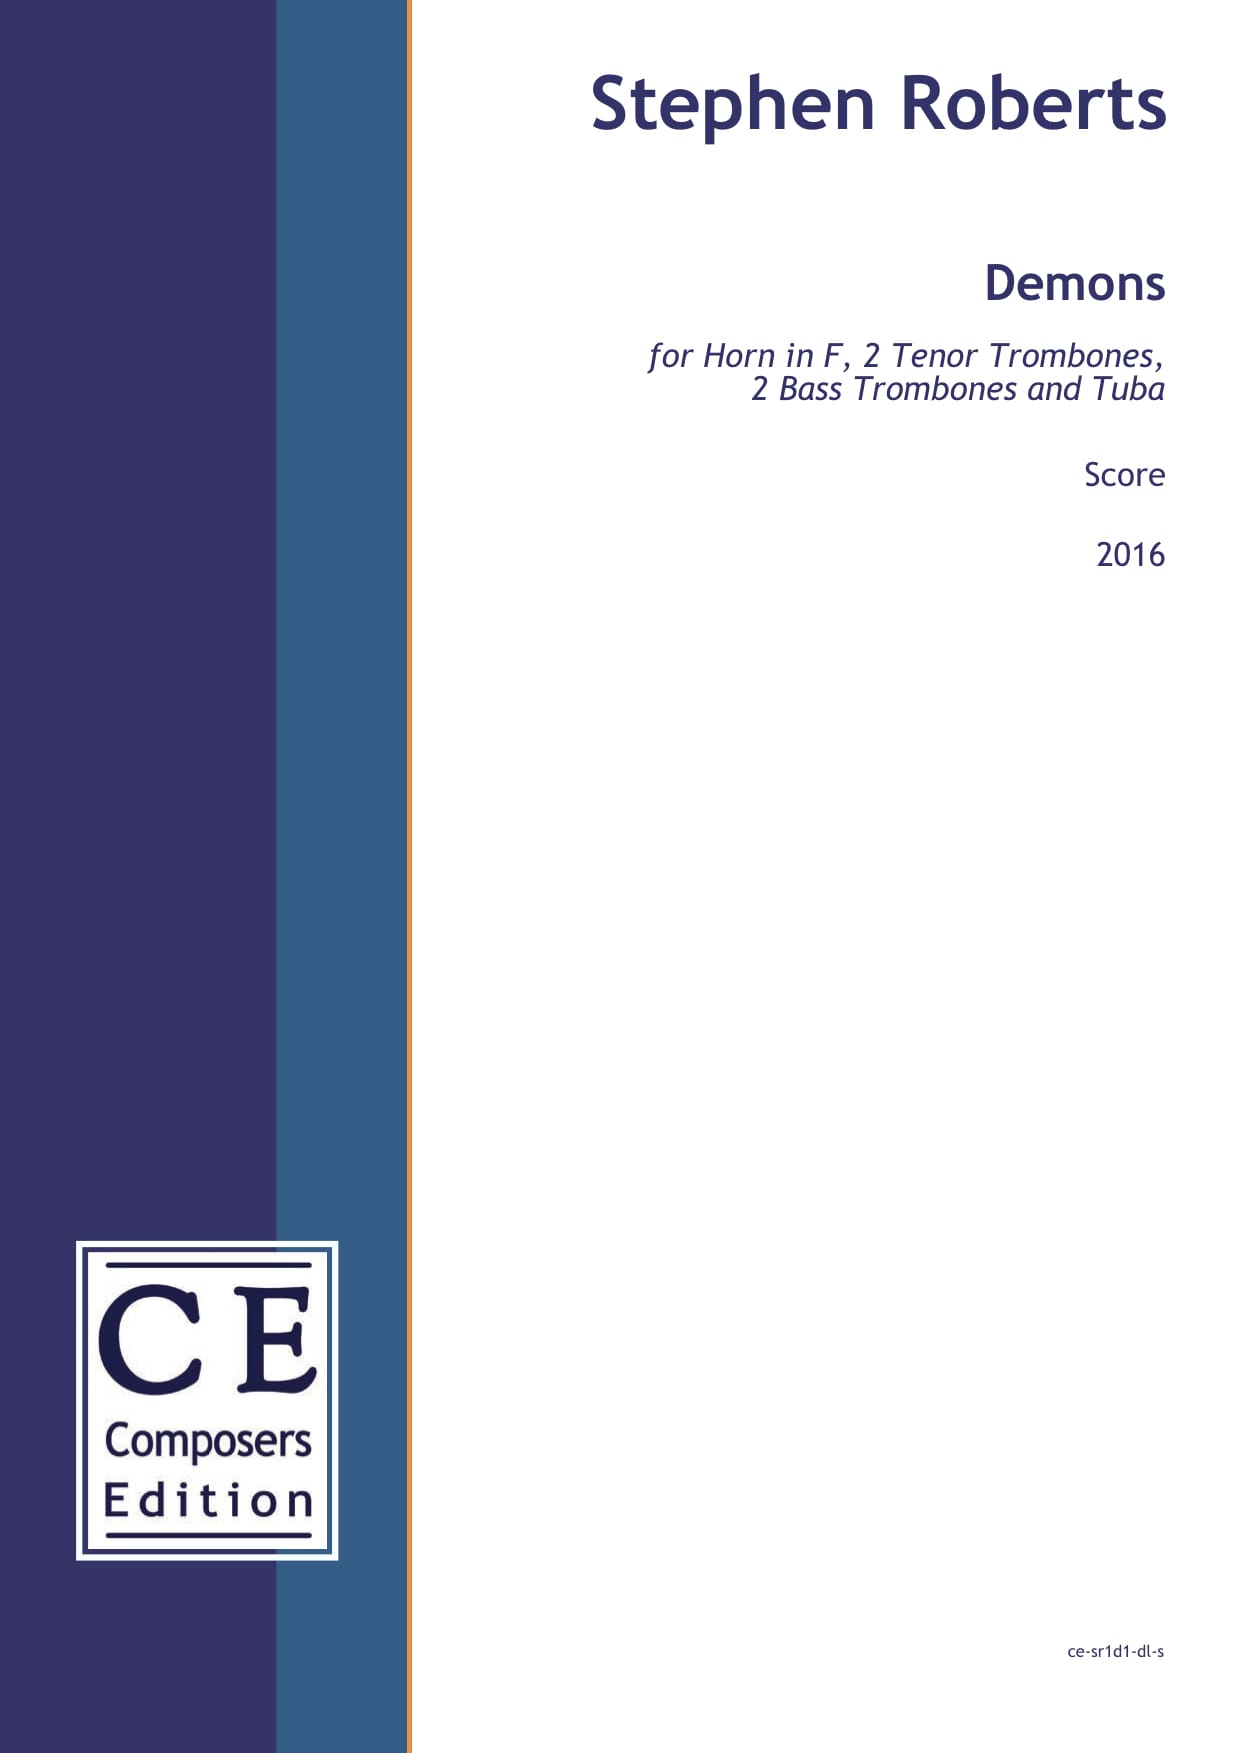 Stephen Roberts: Demons for Horn in F, 2 Tenor Trombones, 2 Bass Trombones and Tuba